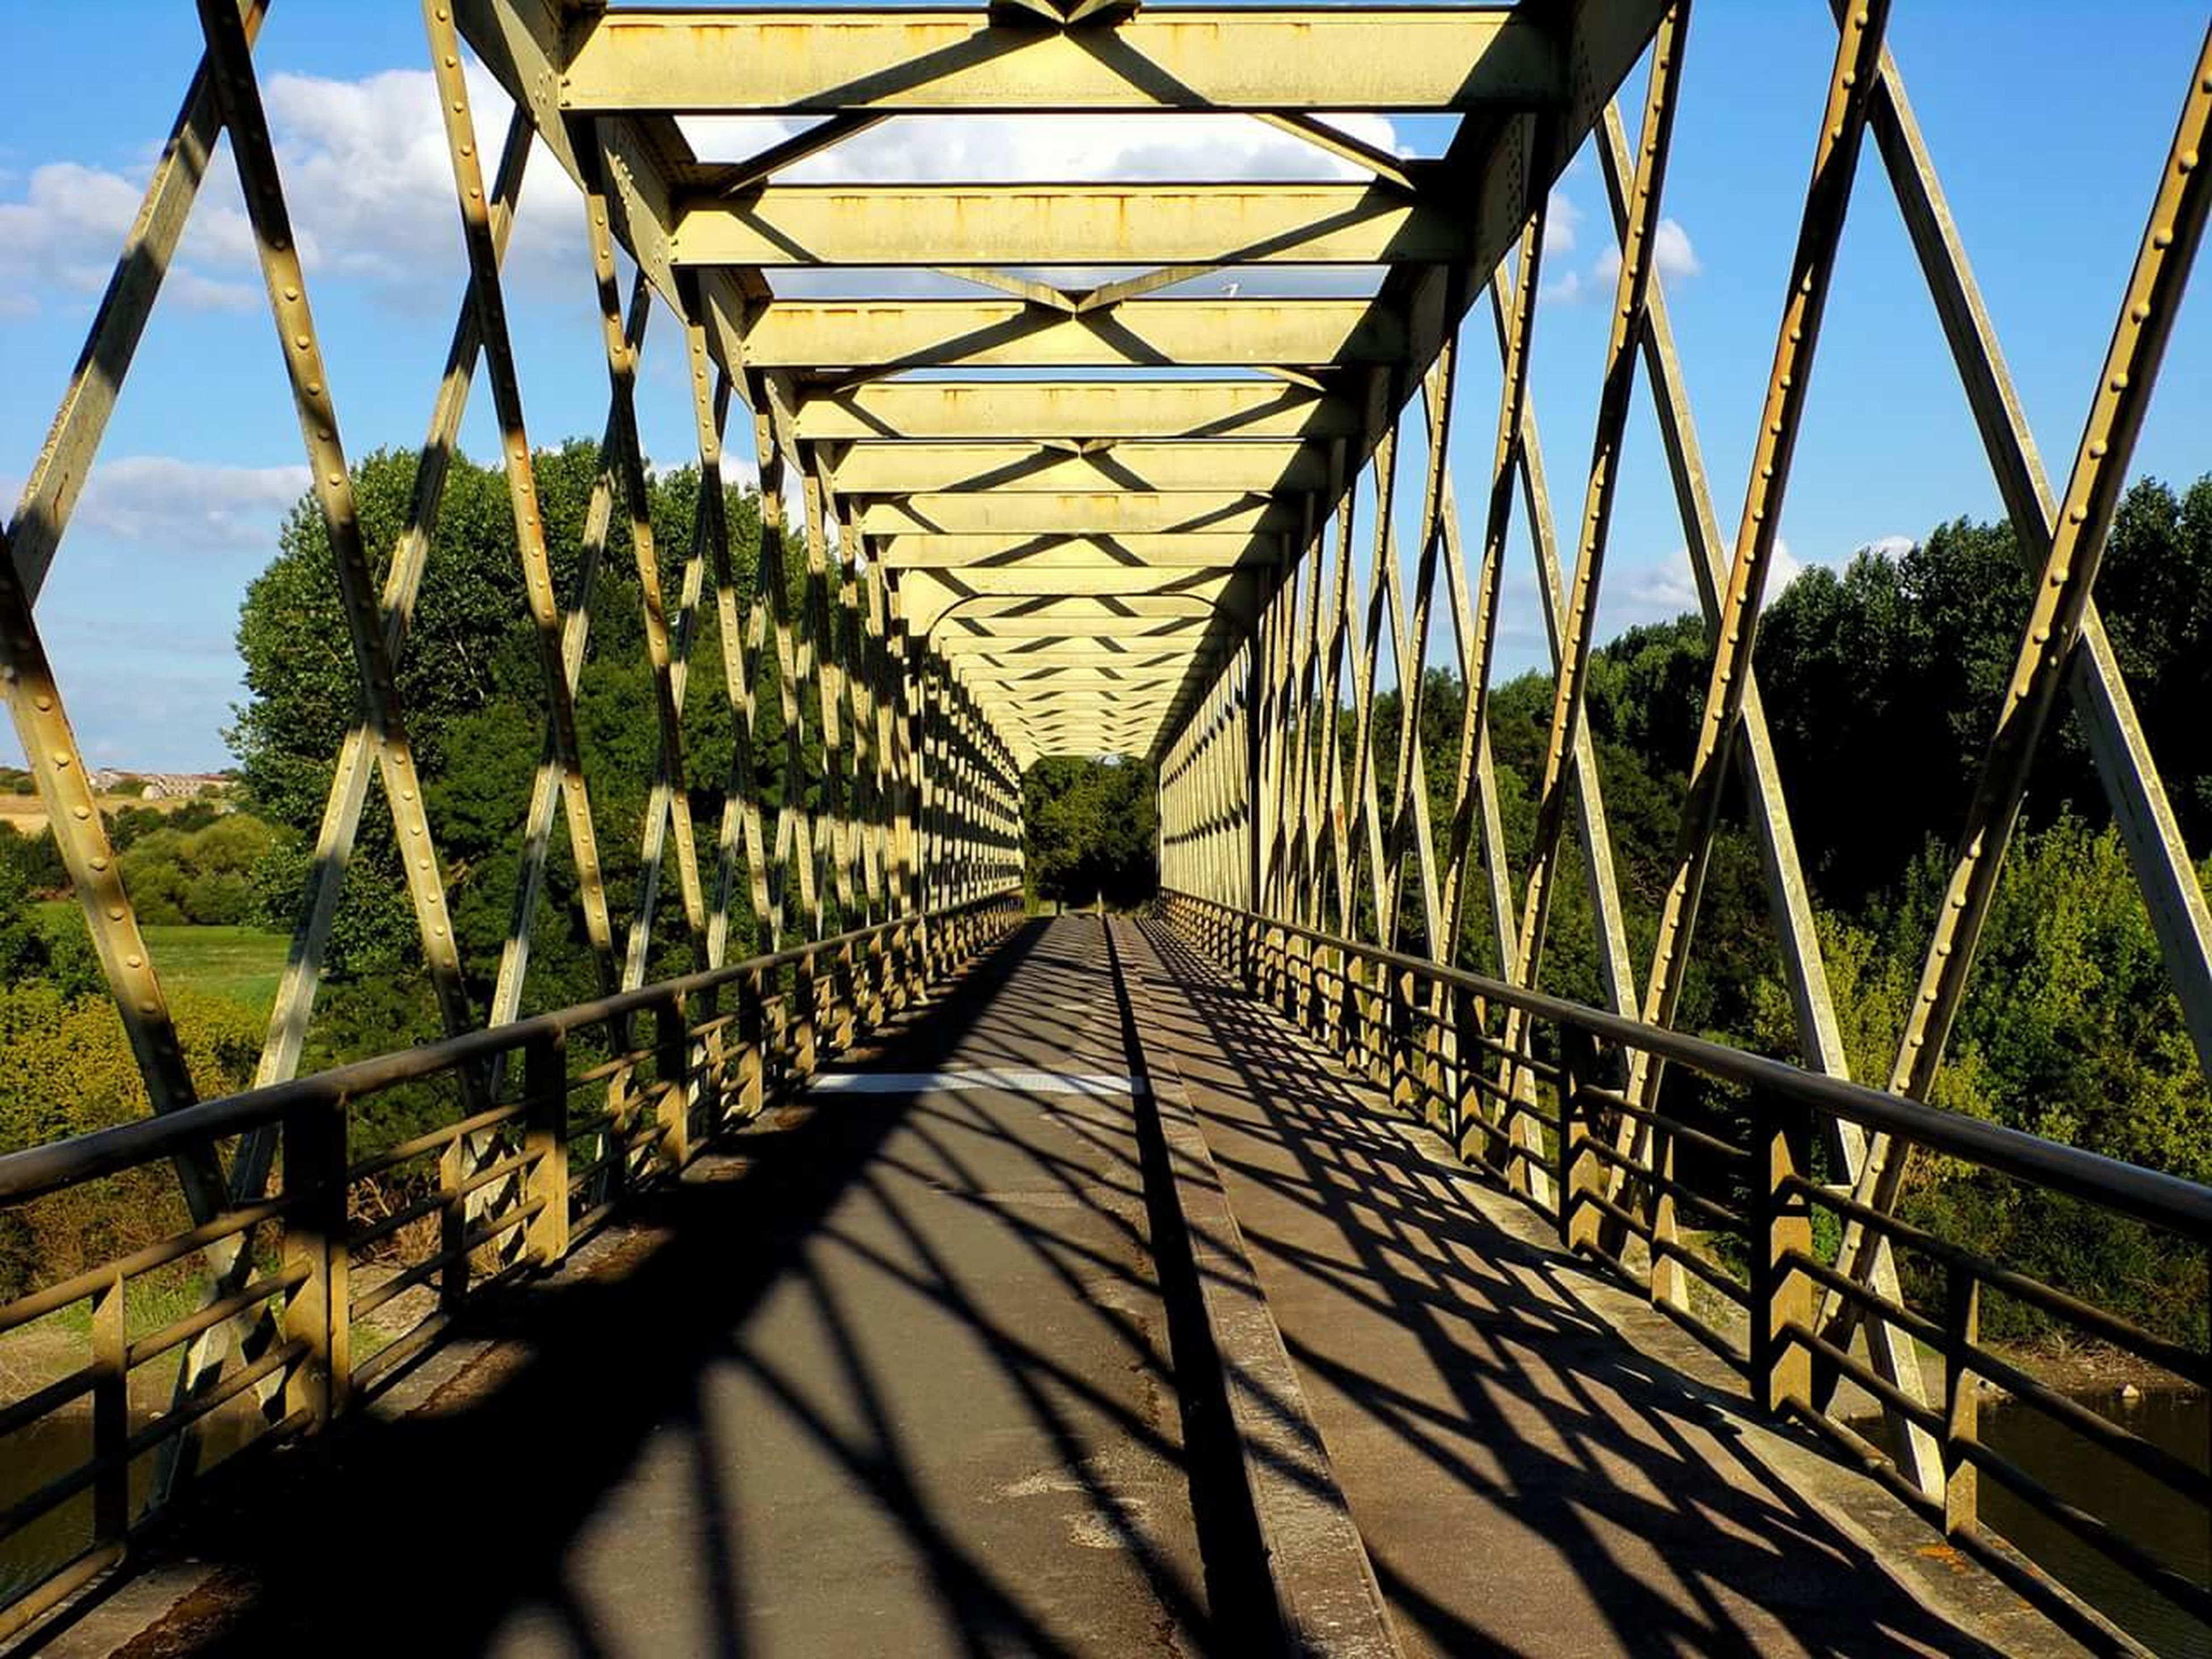 shadow, sunlight, sky, metal, bridge - man made structure, day, outdoors, tree, no people, built structure, connection, nature, architecture